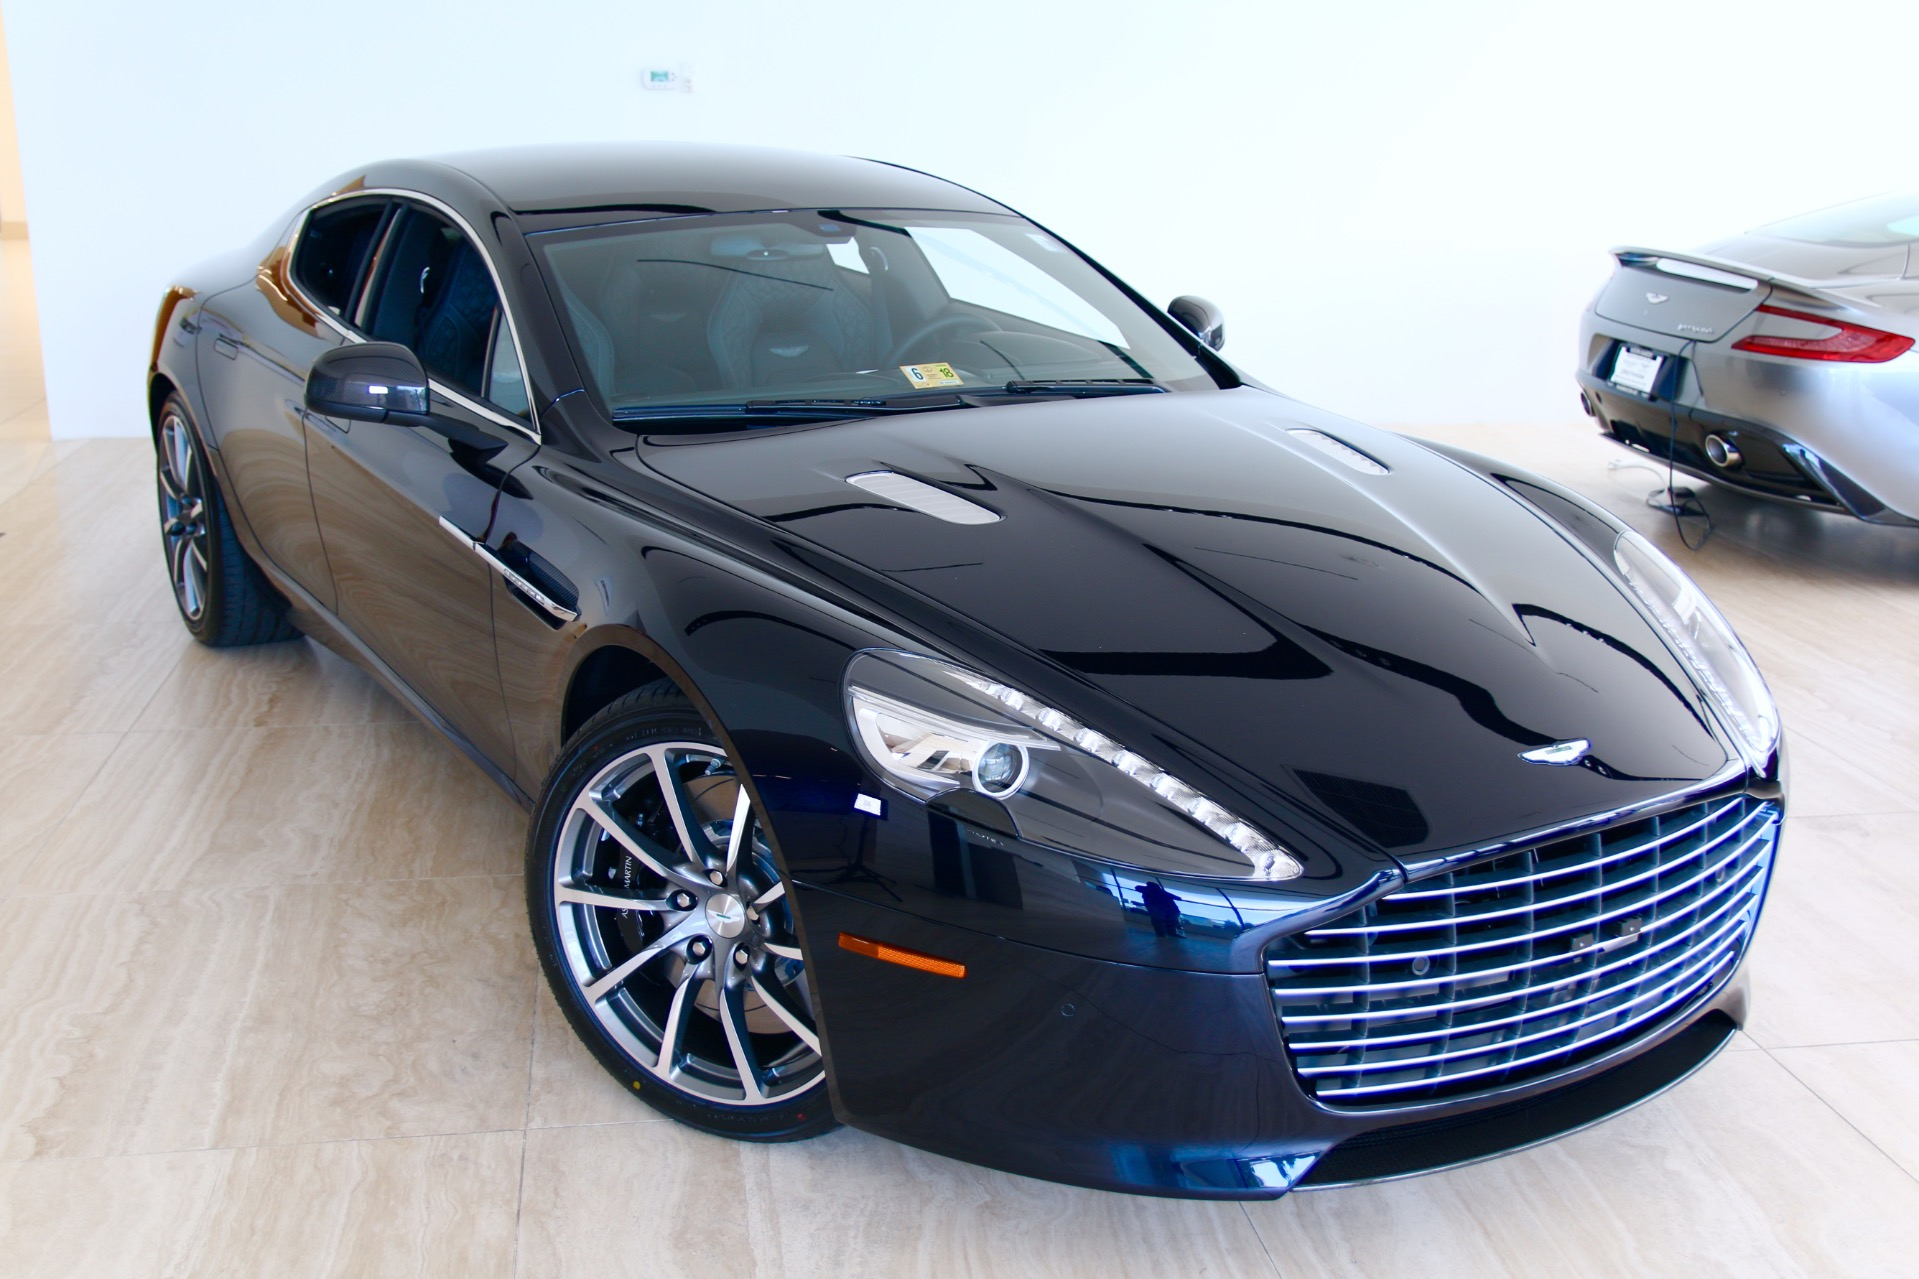 2017 aston martin rapide s stock 7nf05936 for sale near vienna va va aston martin dealer. Black Bedroom Furniture Sets. Home Design Ideas